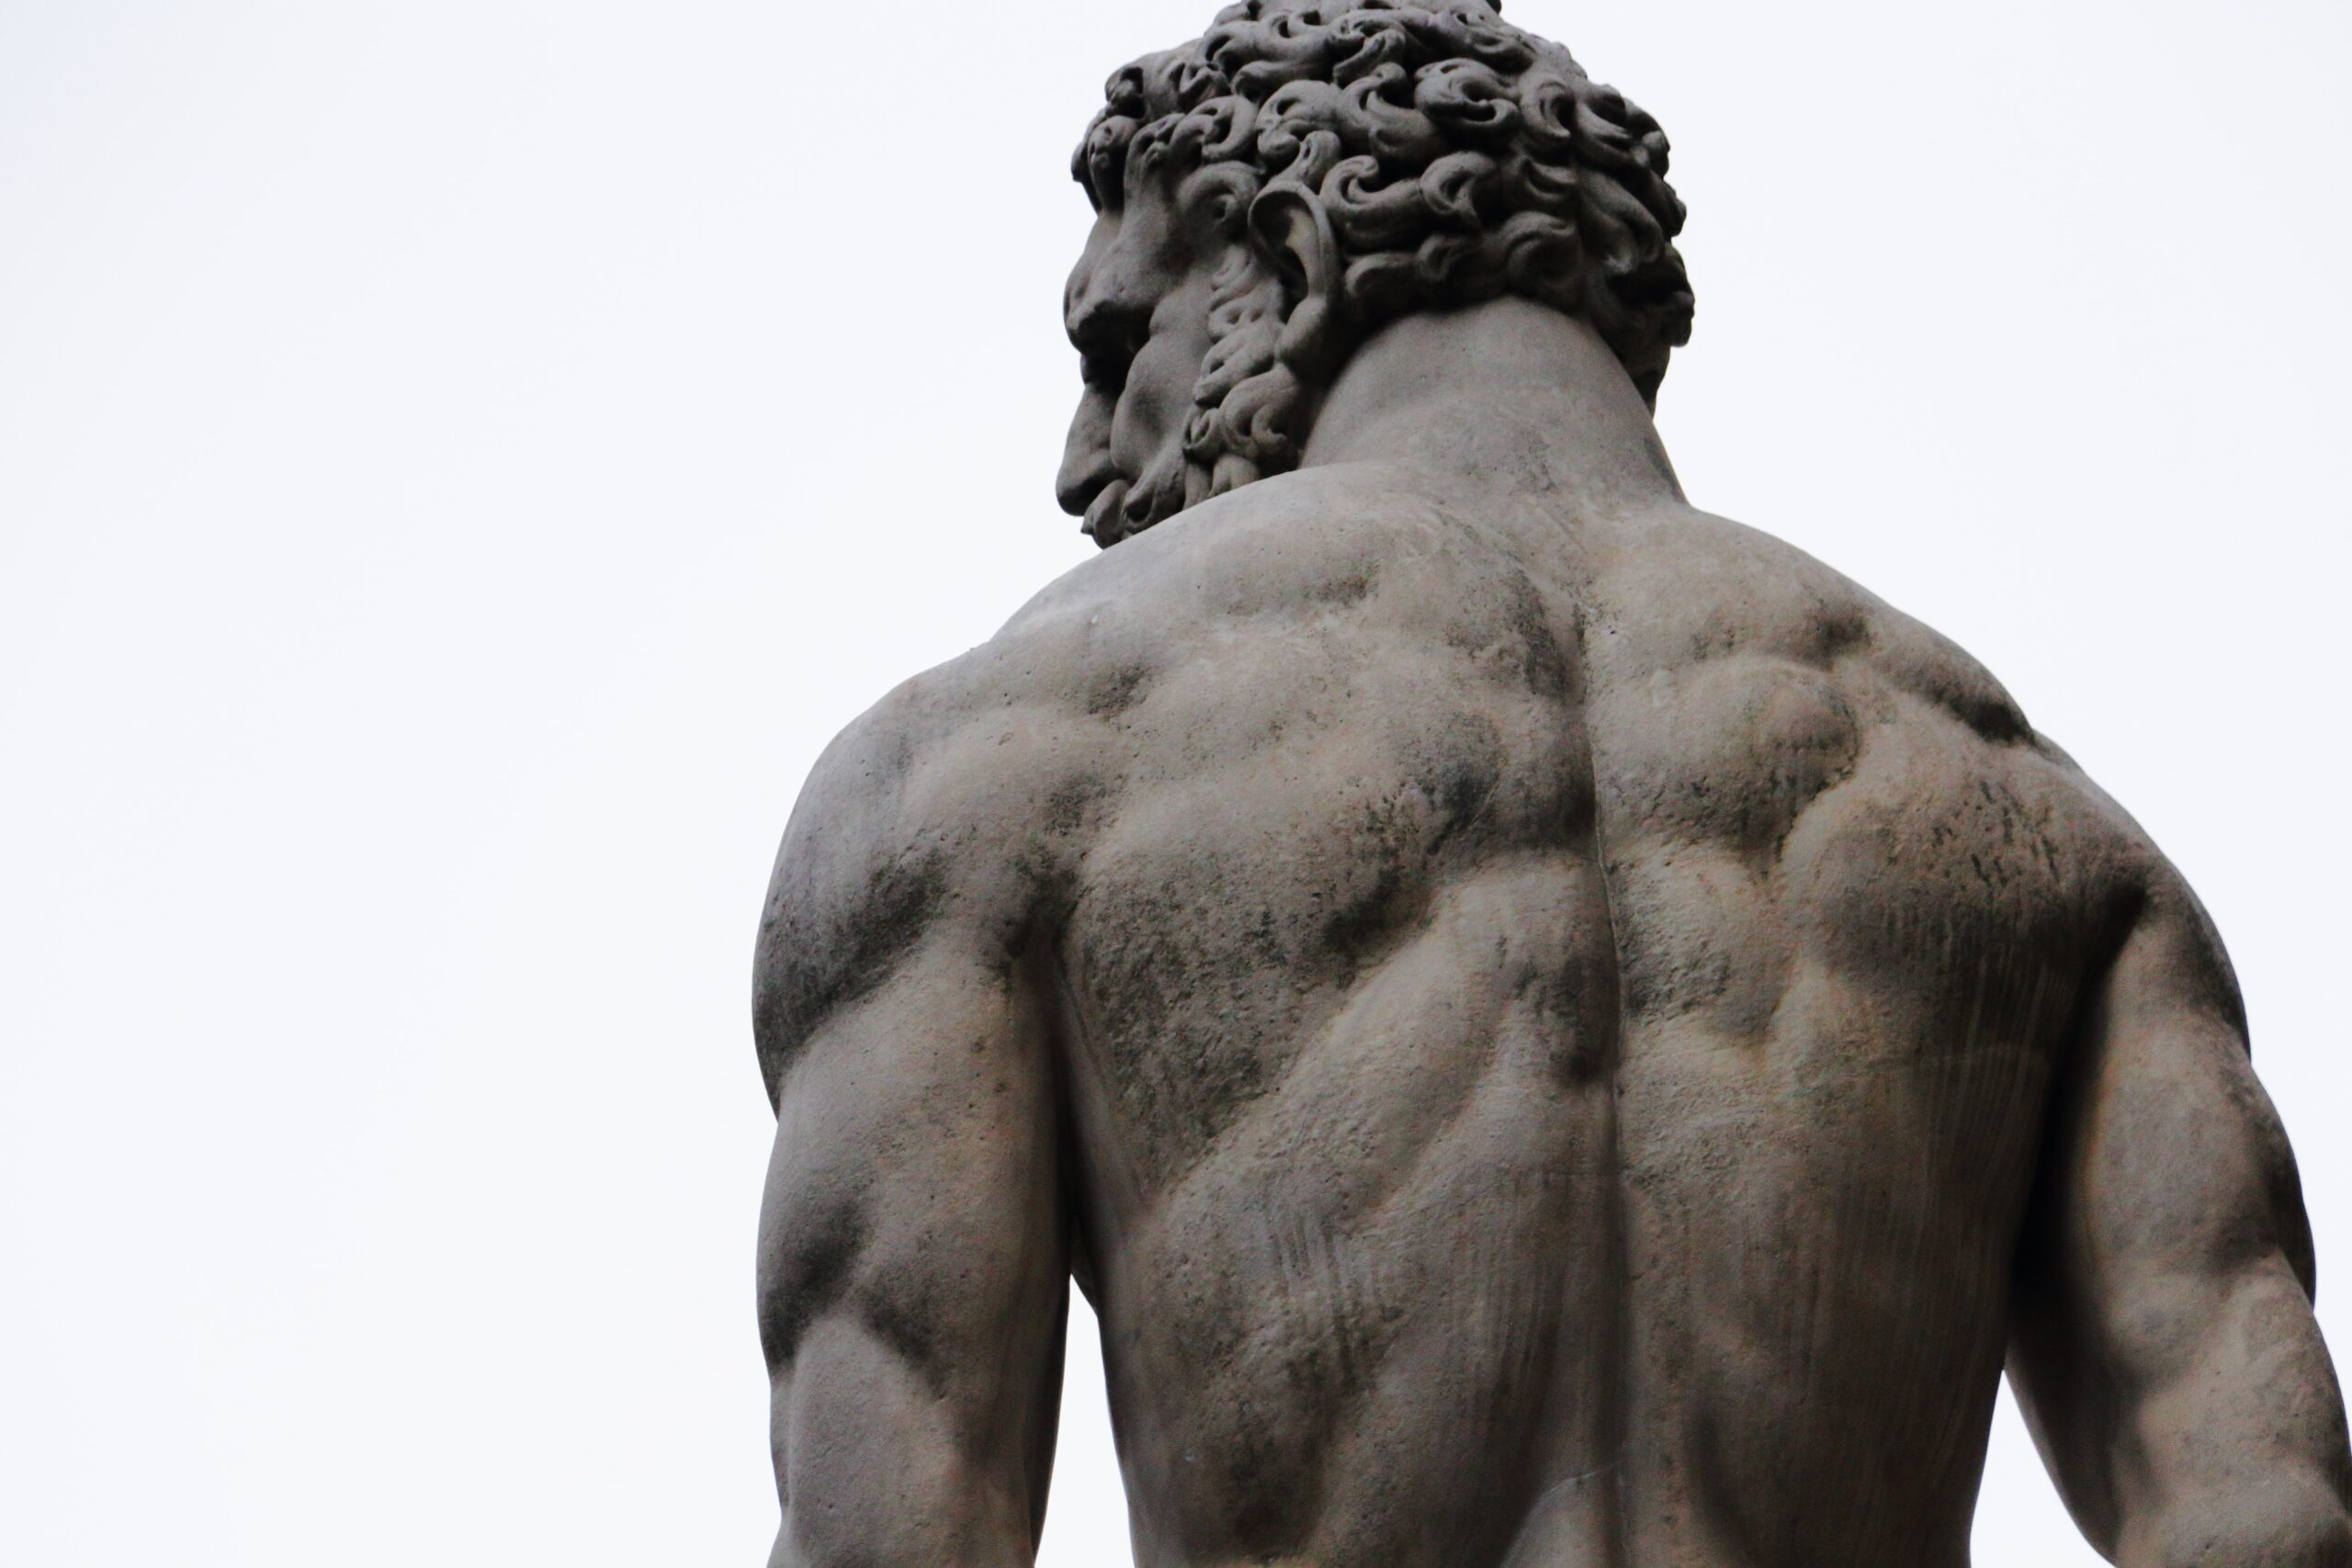 Back of a strong man and story of Samson